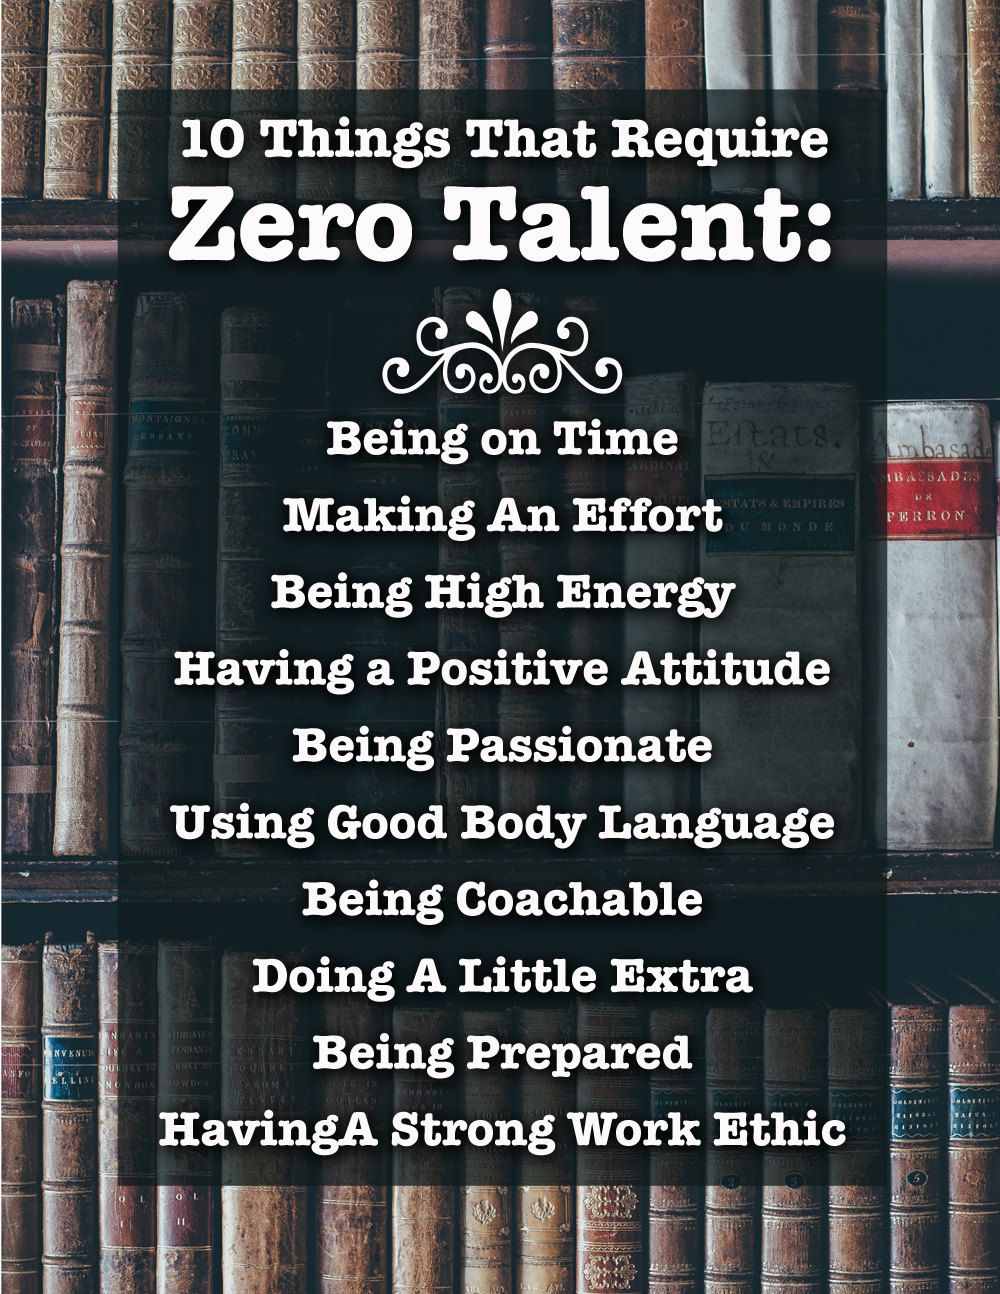 graphic relating to 10 Things That Require Zero Talent Printable named 10 Variables That Need Zero Ability, Inspirational Print